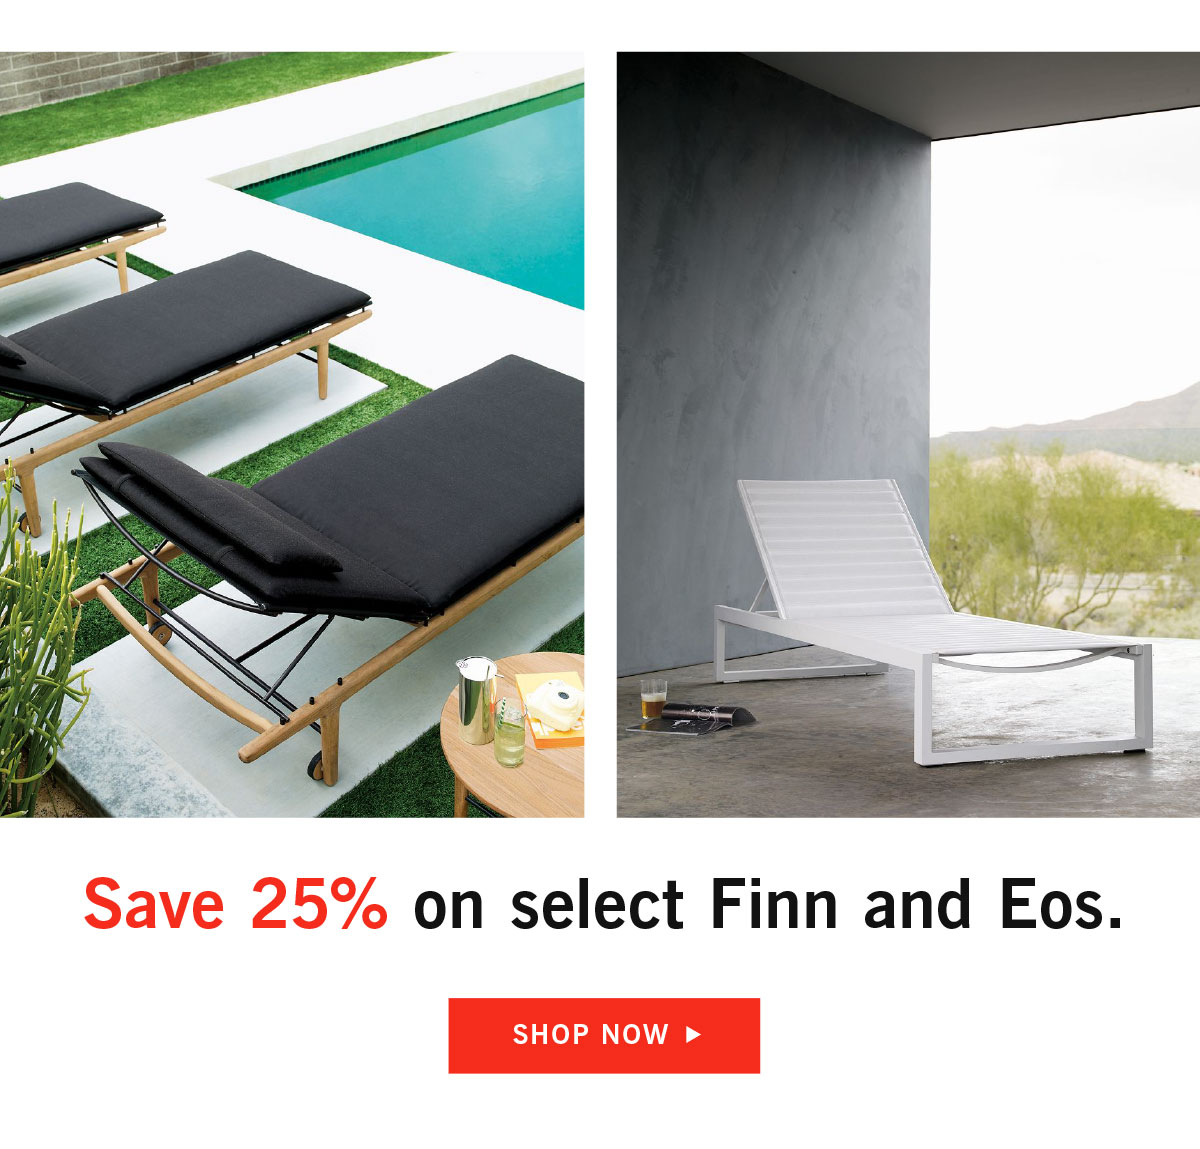 Save 25% on select Finn and Eos outdoor collection